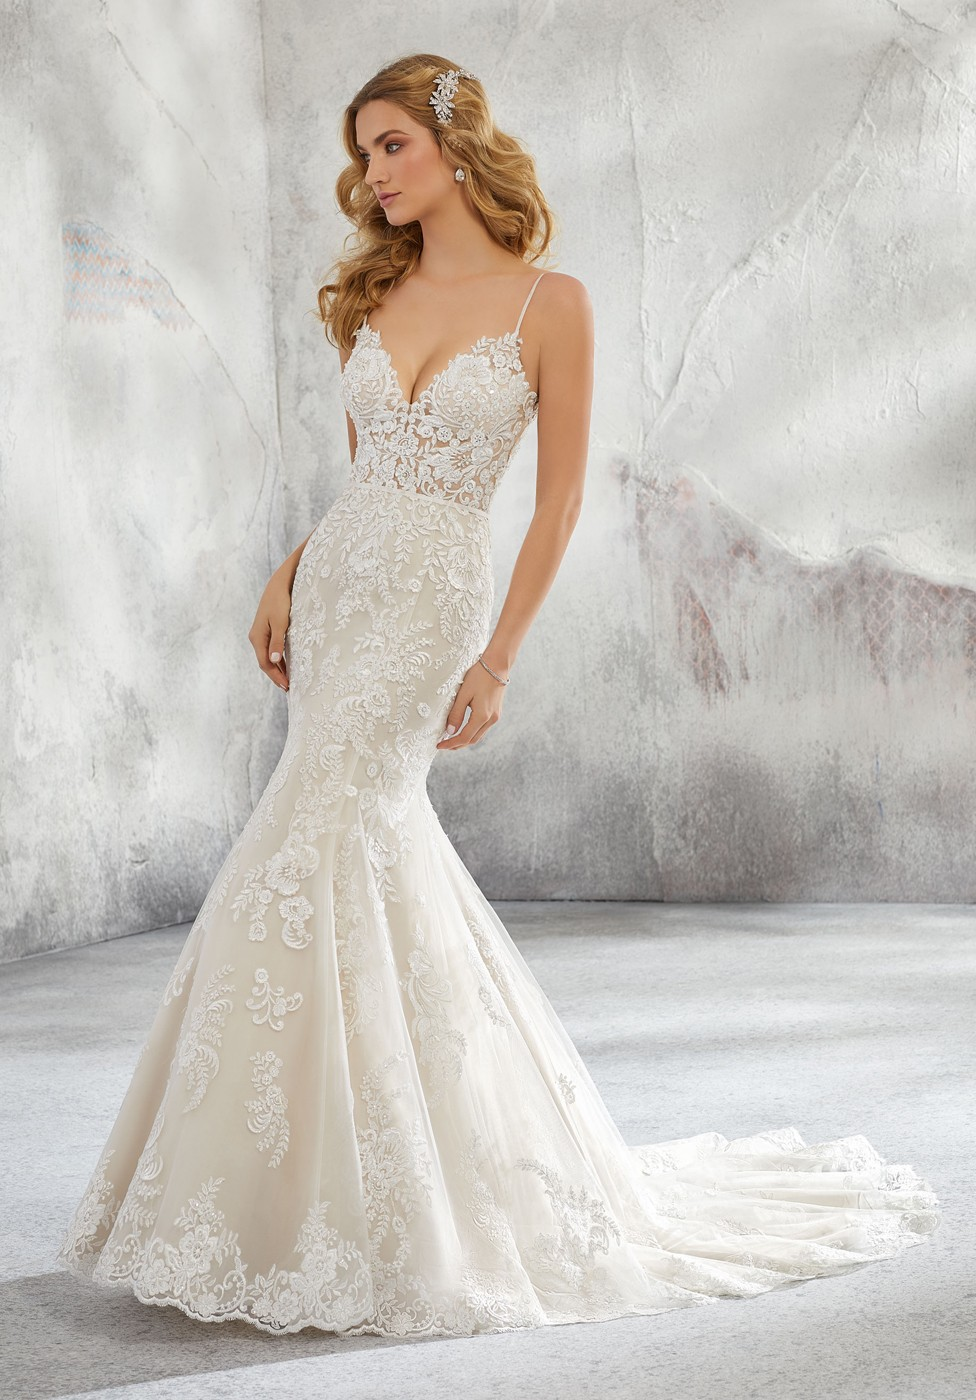 Lace Top Wedding Gown